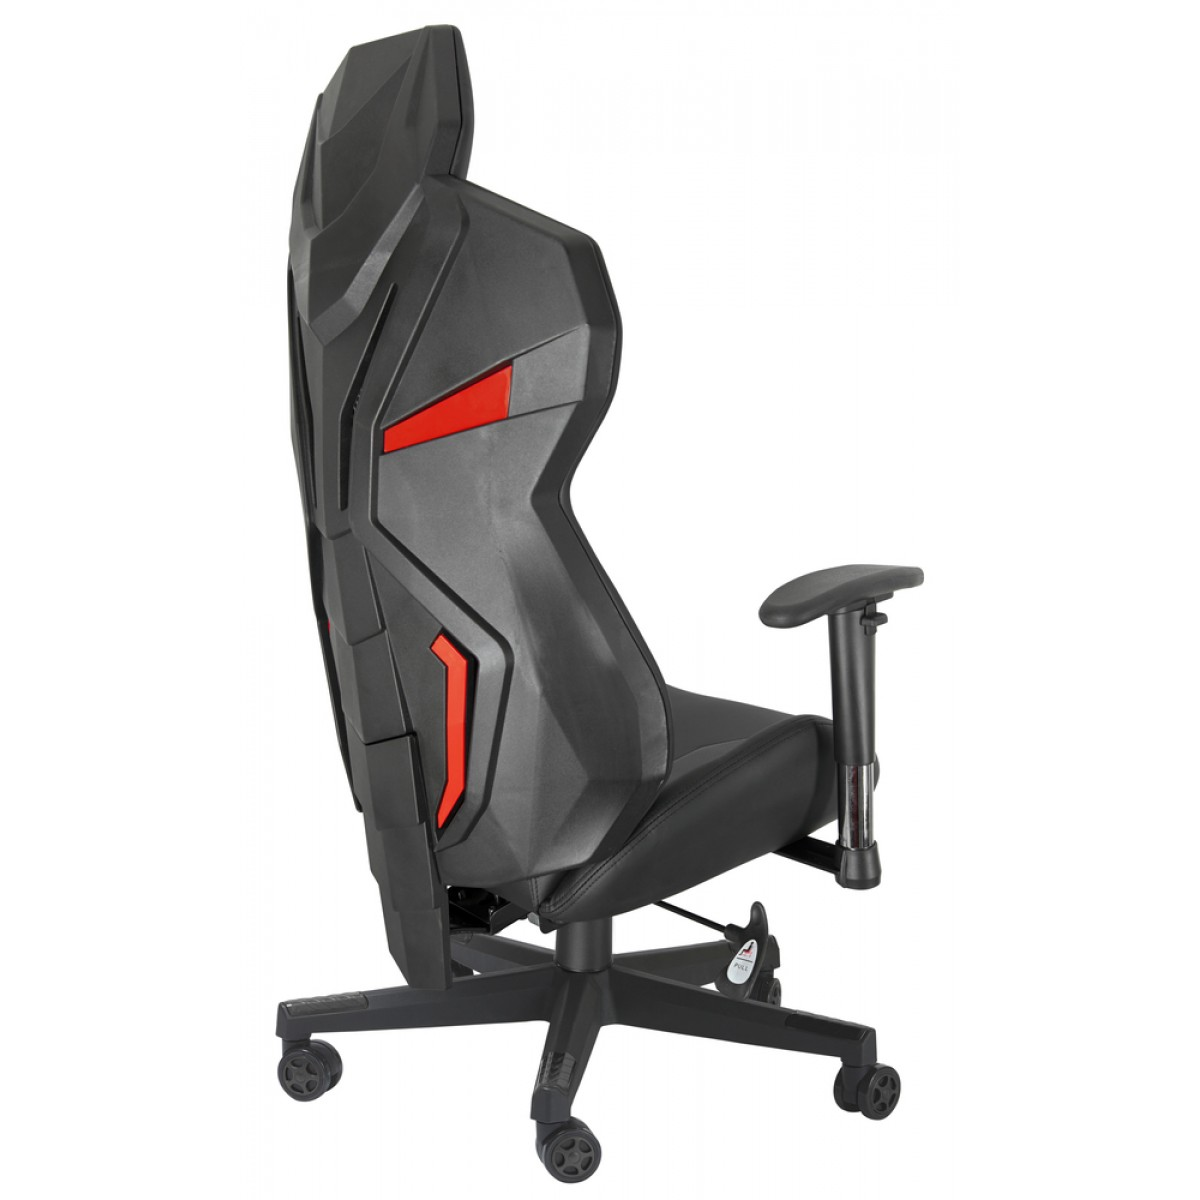 Cadeira Gamer Riotoro, Spitfire M2, Mesh, Reclinável, Black/Red, GC-10M2